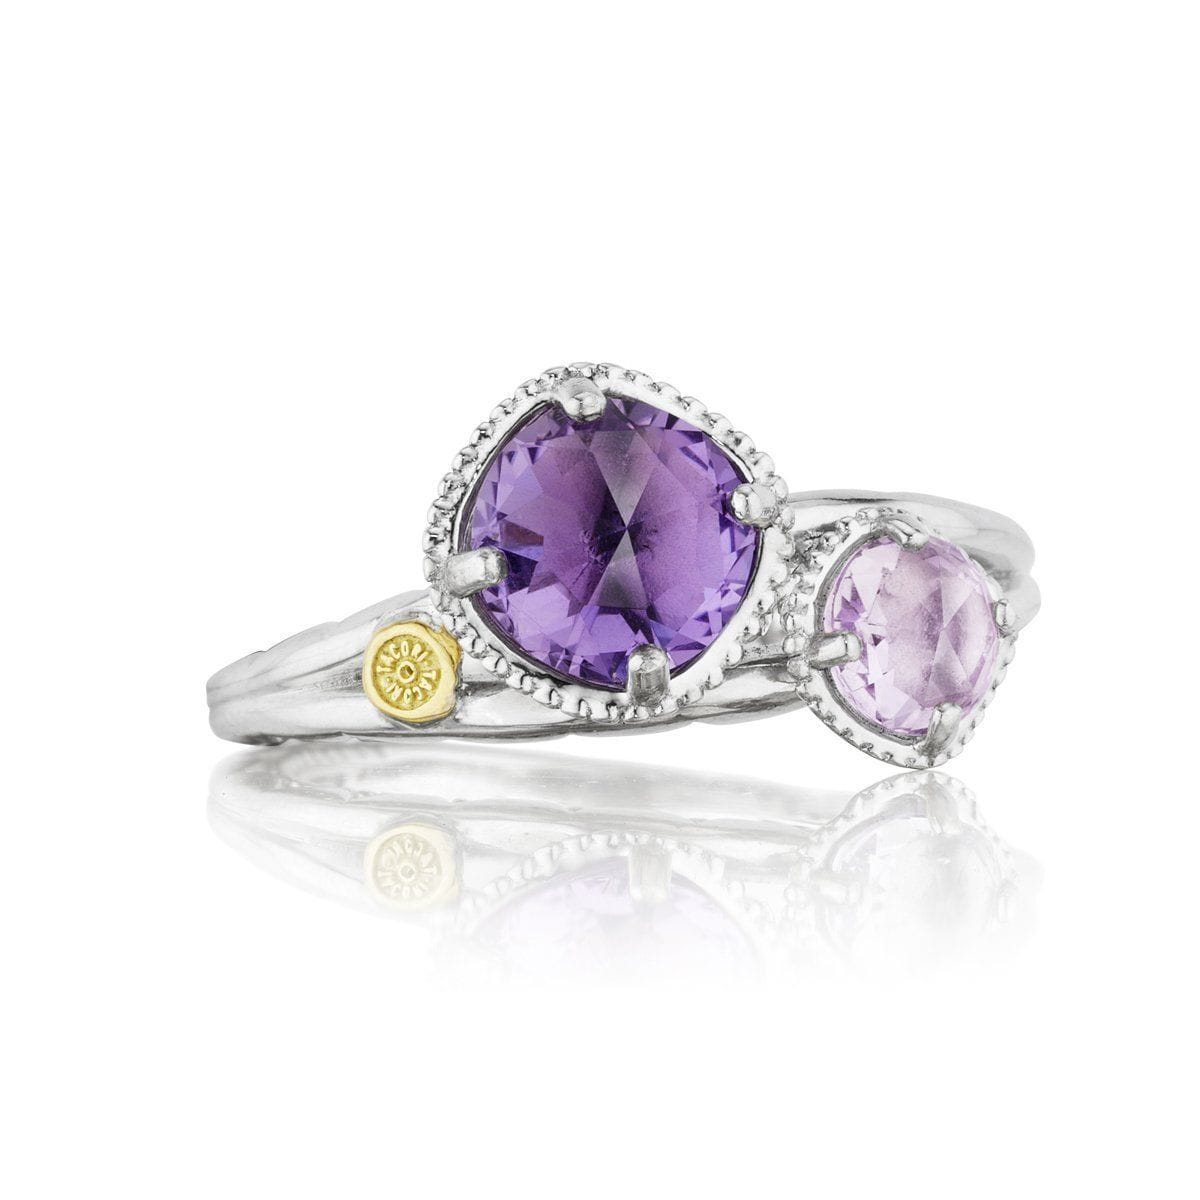 Silver Rose and Purple Amethyst Ring - SR1380113-Tacori-Renee Taylor Gallery